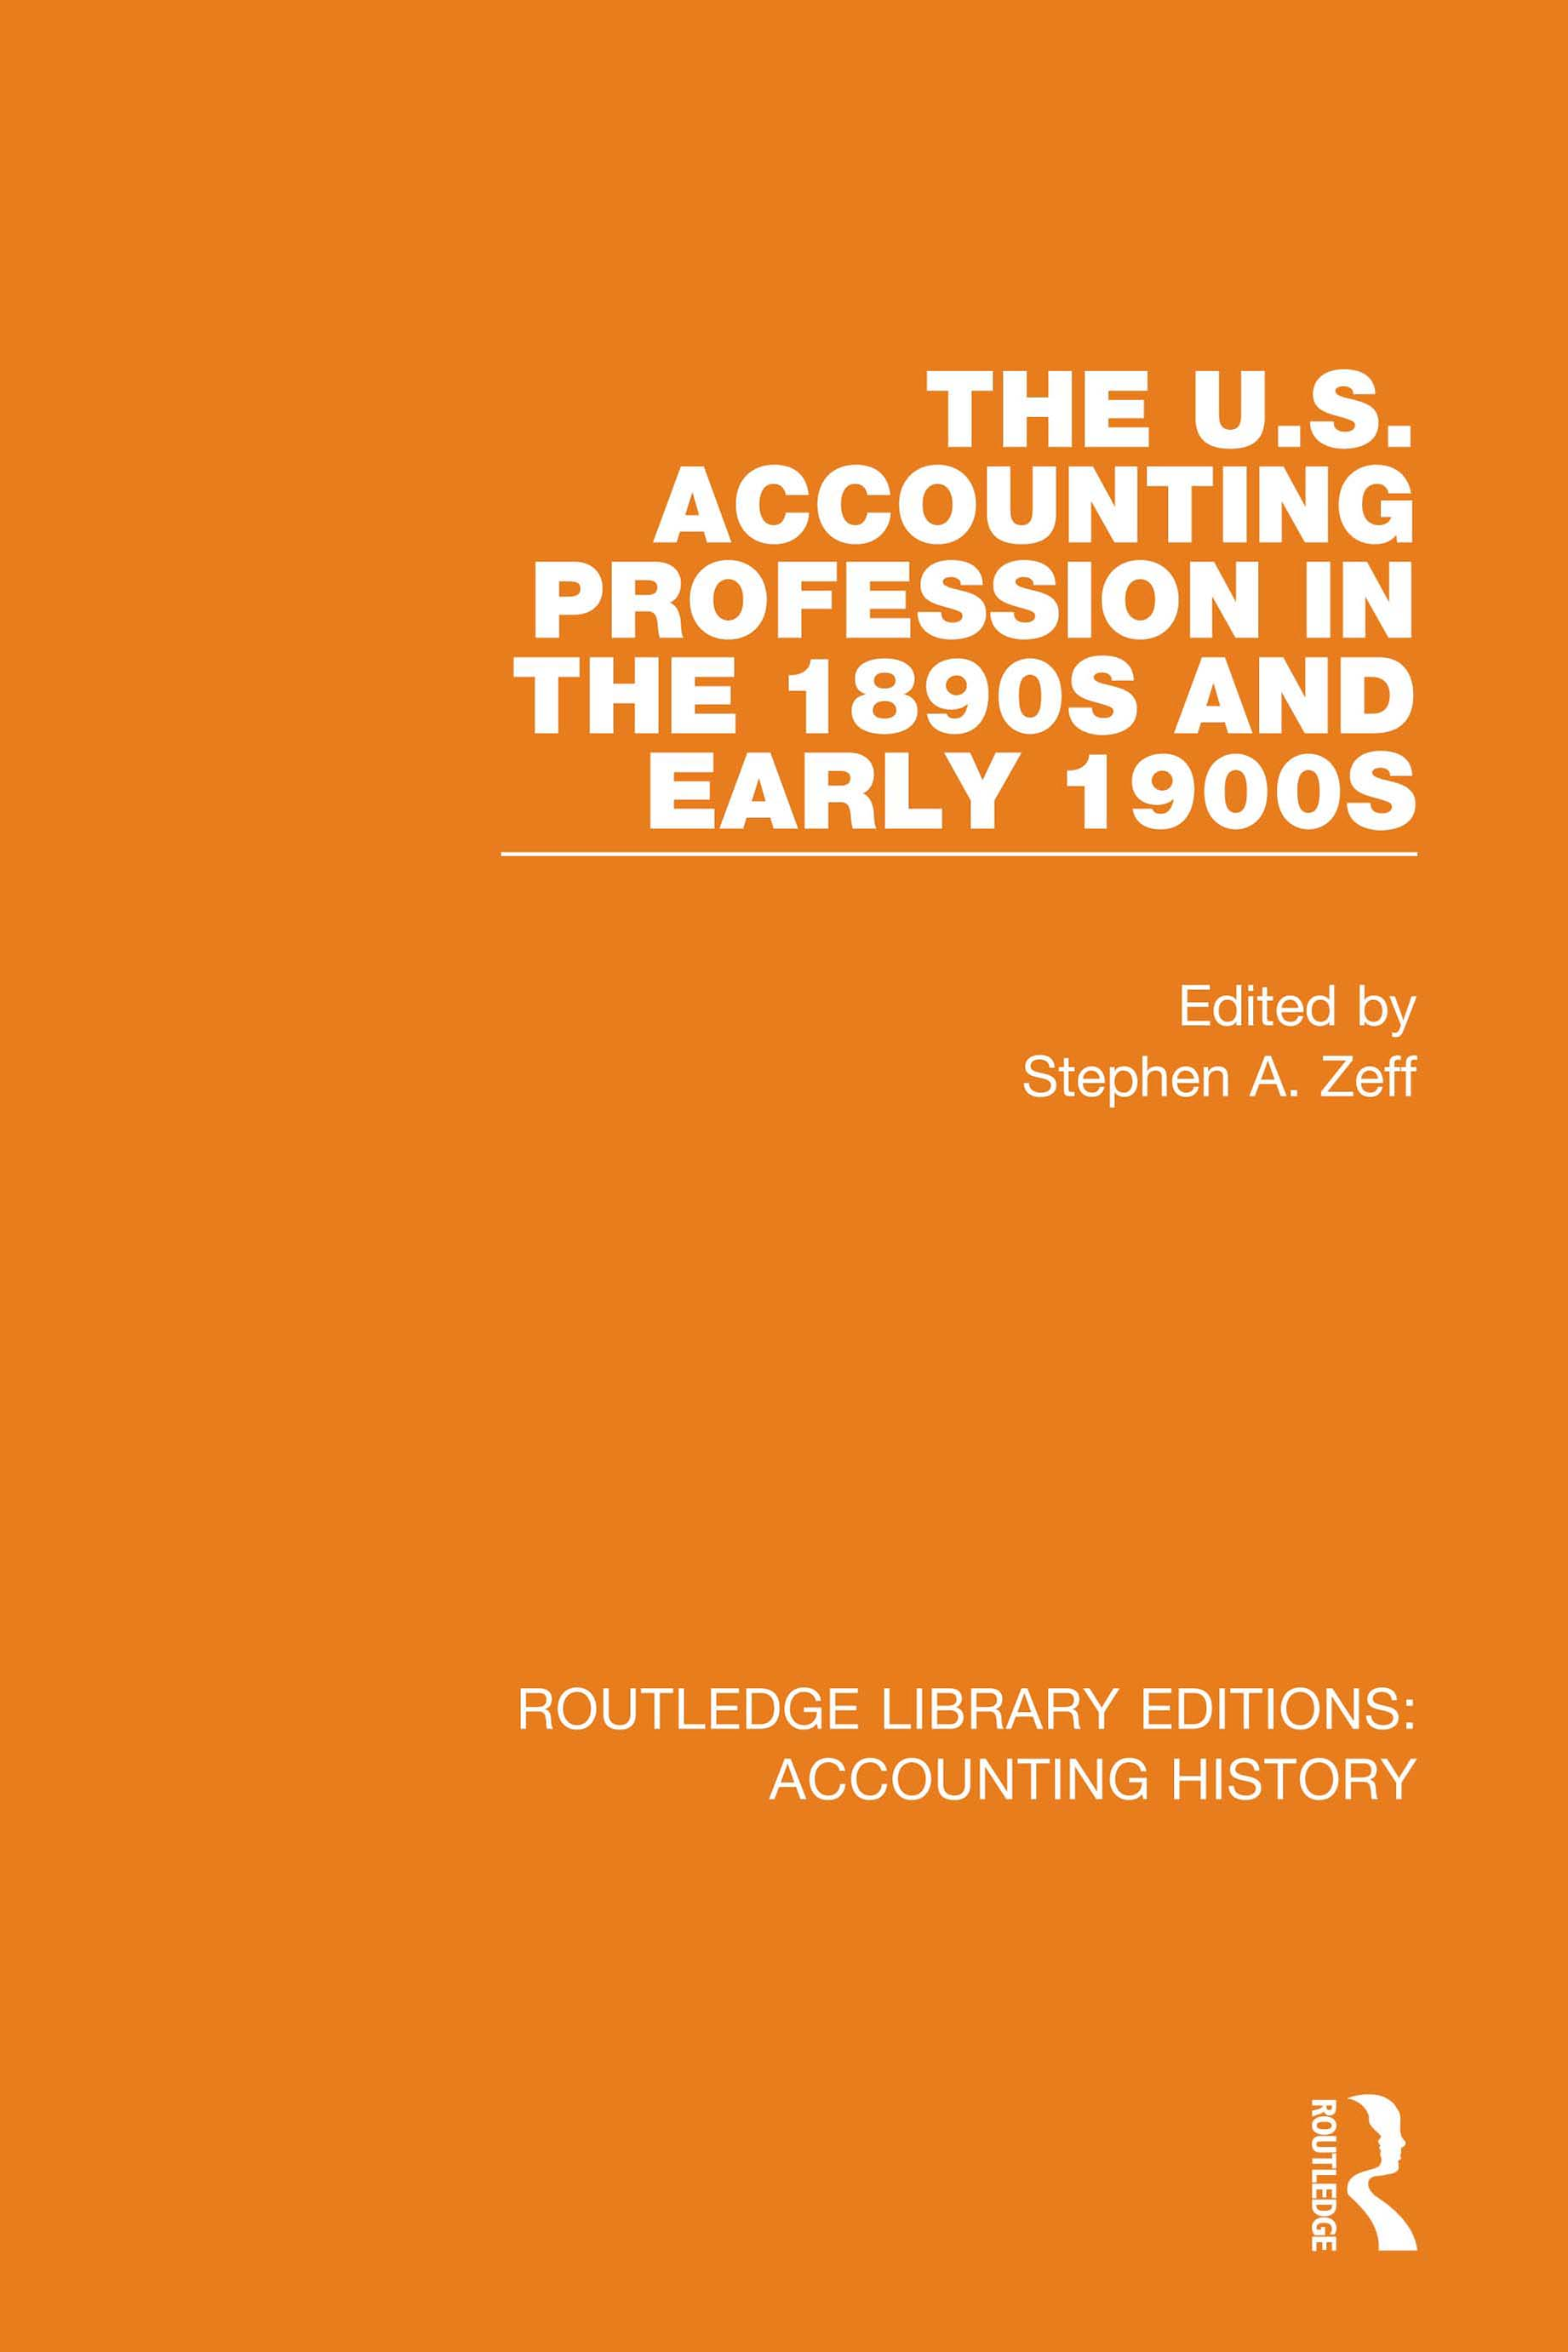 The U.S. Accounting Profession in the 1890s and Early 1900s